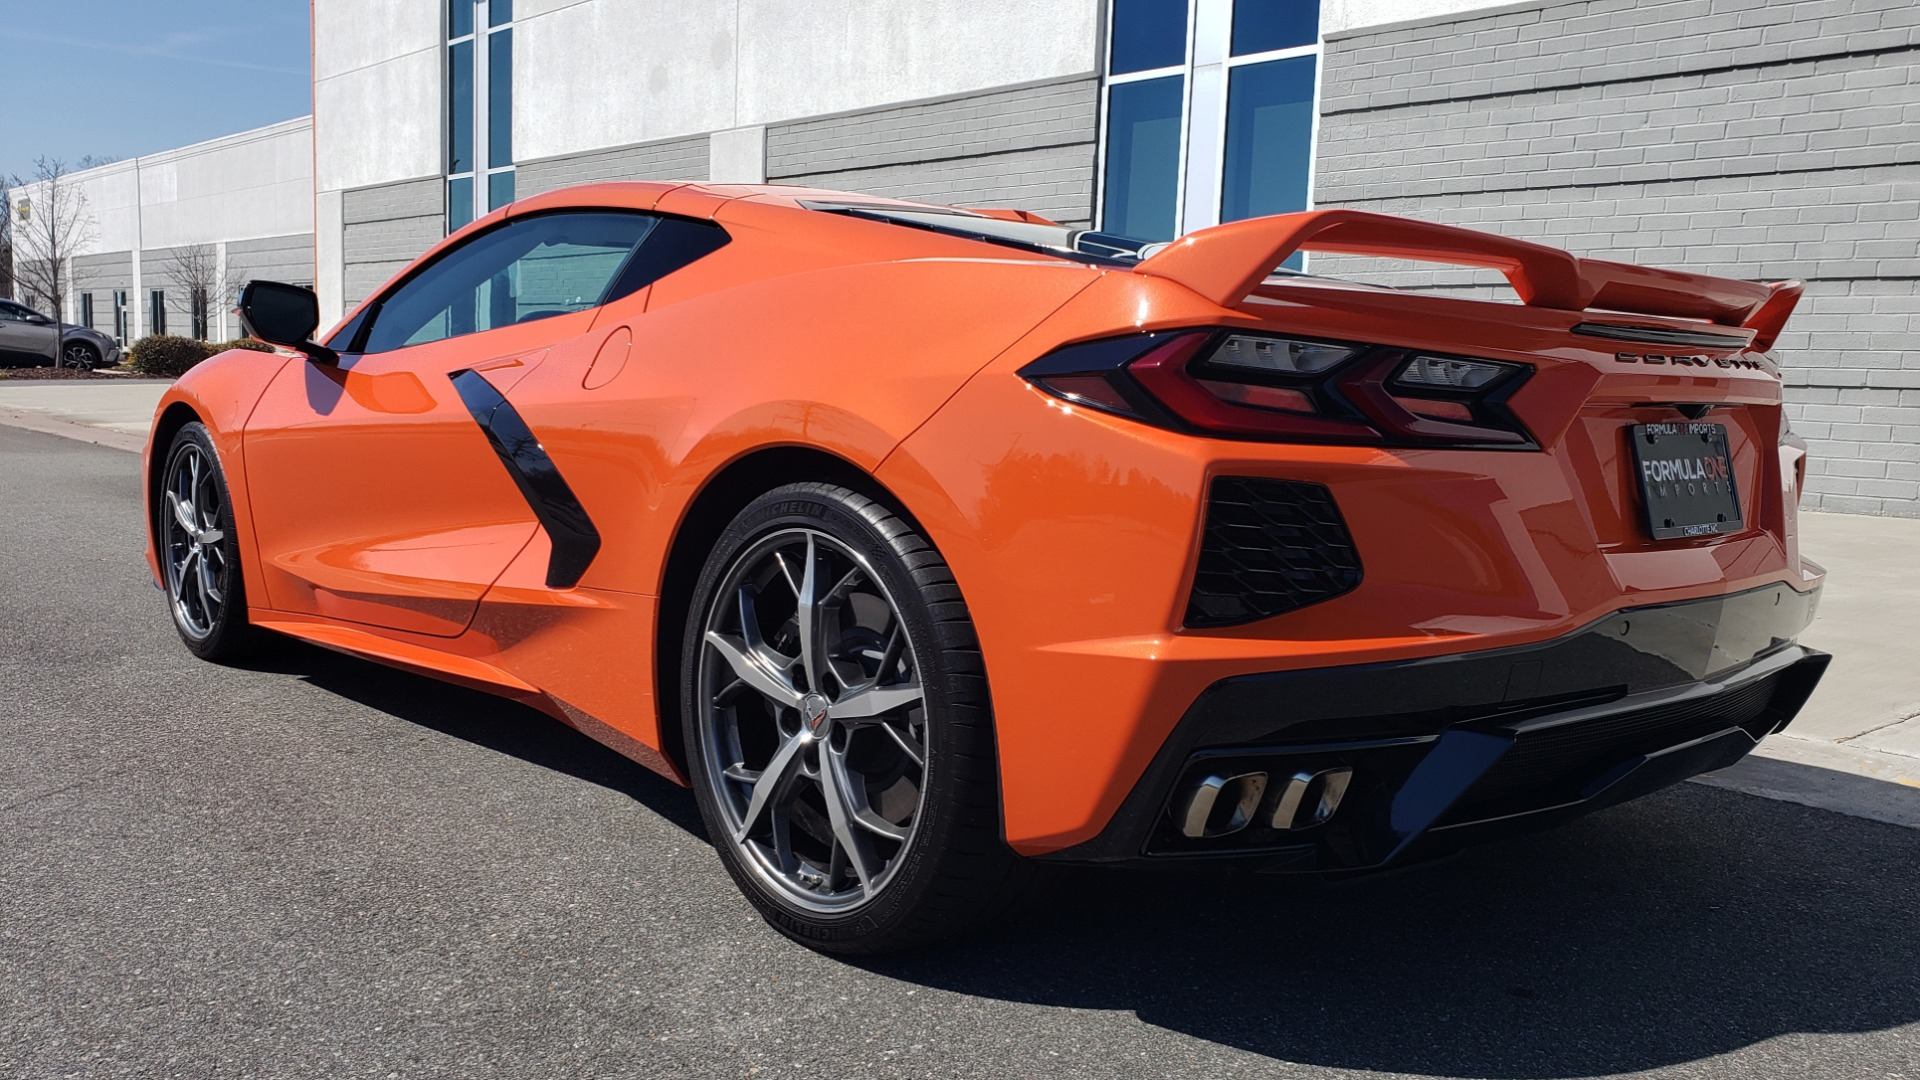 Used 2020 Chevrolet CORVETTE C8 STINGRAY 3LT COUPE / NAV / BOSE / CAMERA / LIKE NEW for sale Sold at Formula Imports in Charlotte NC 28227 8